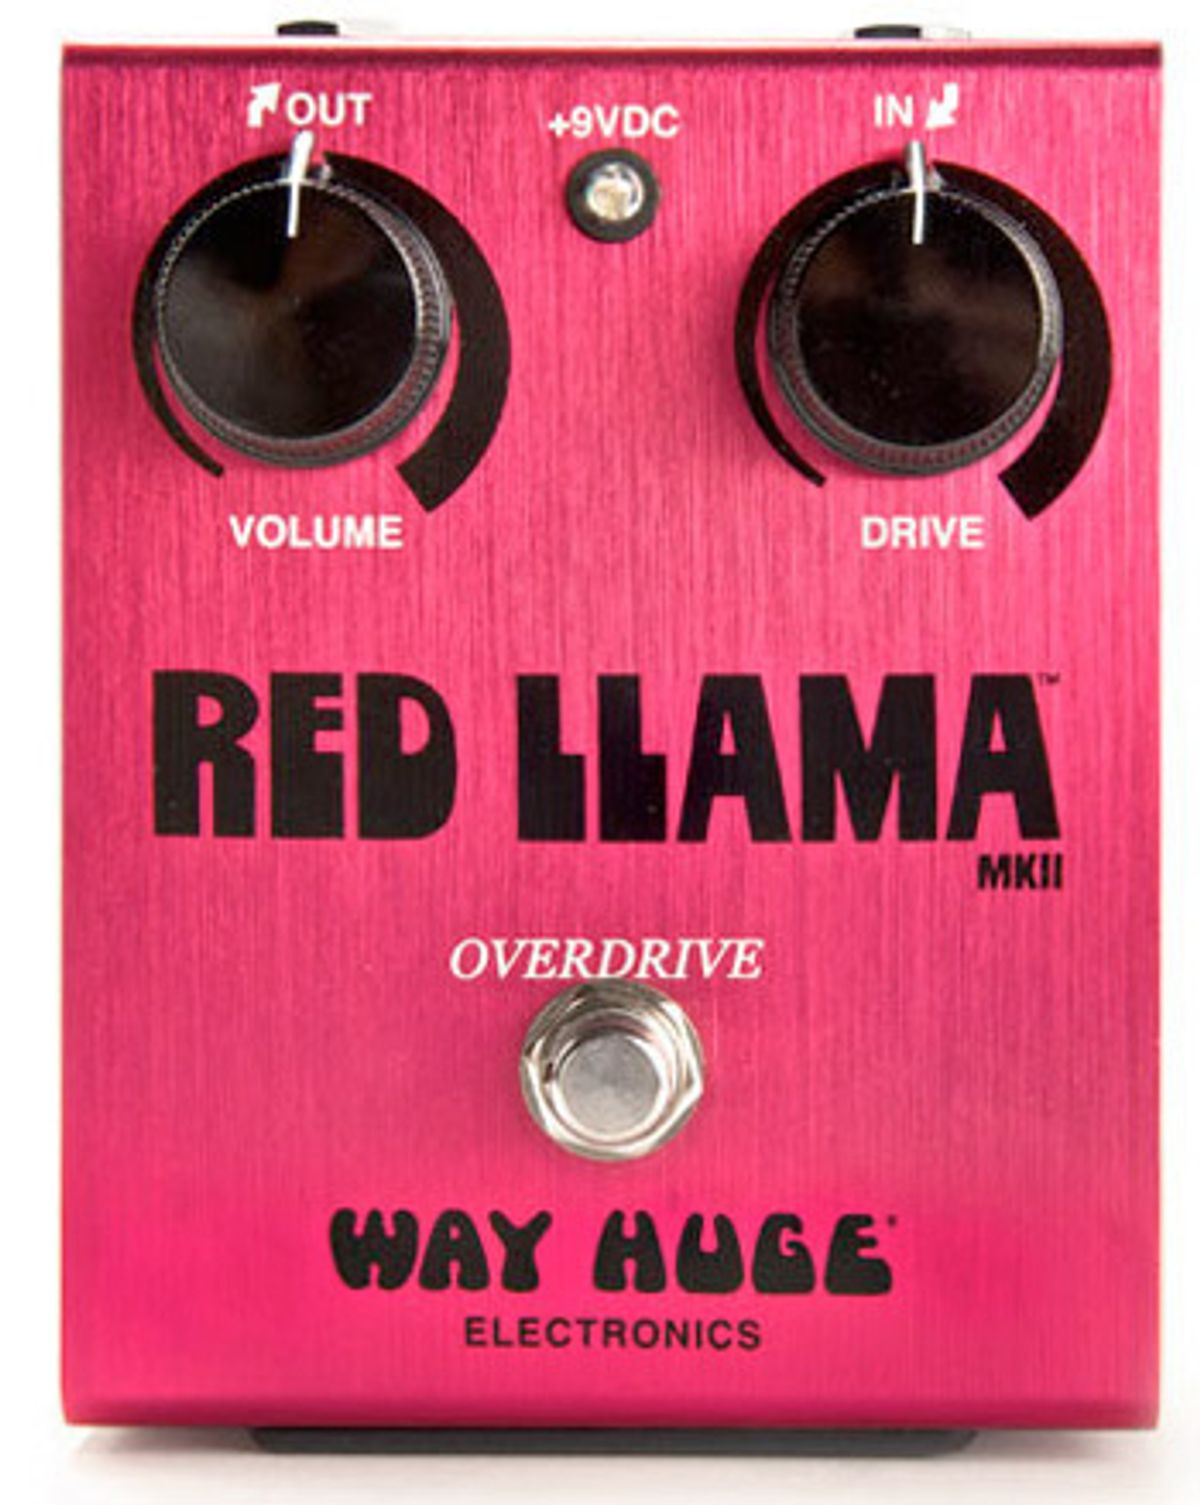 Way Huge Red Llama Overdrive MkII Pedal Review